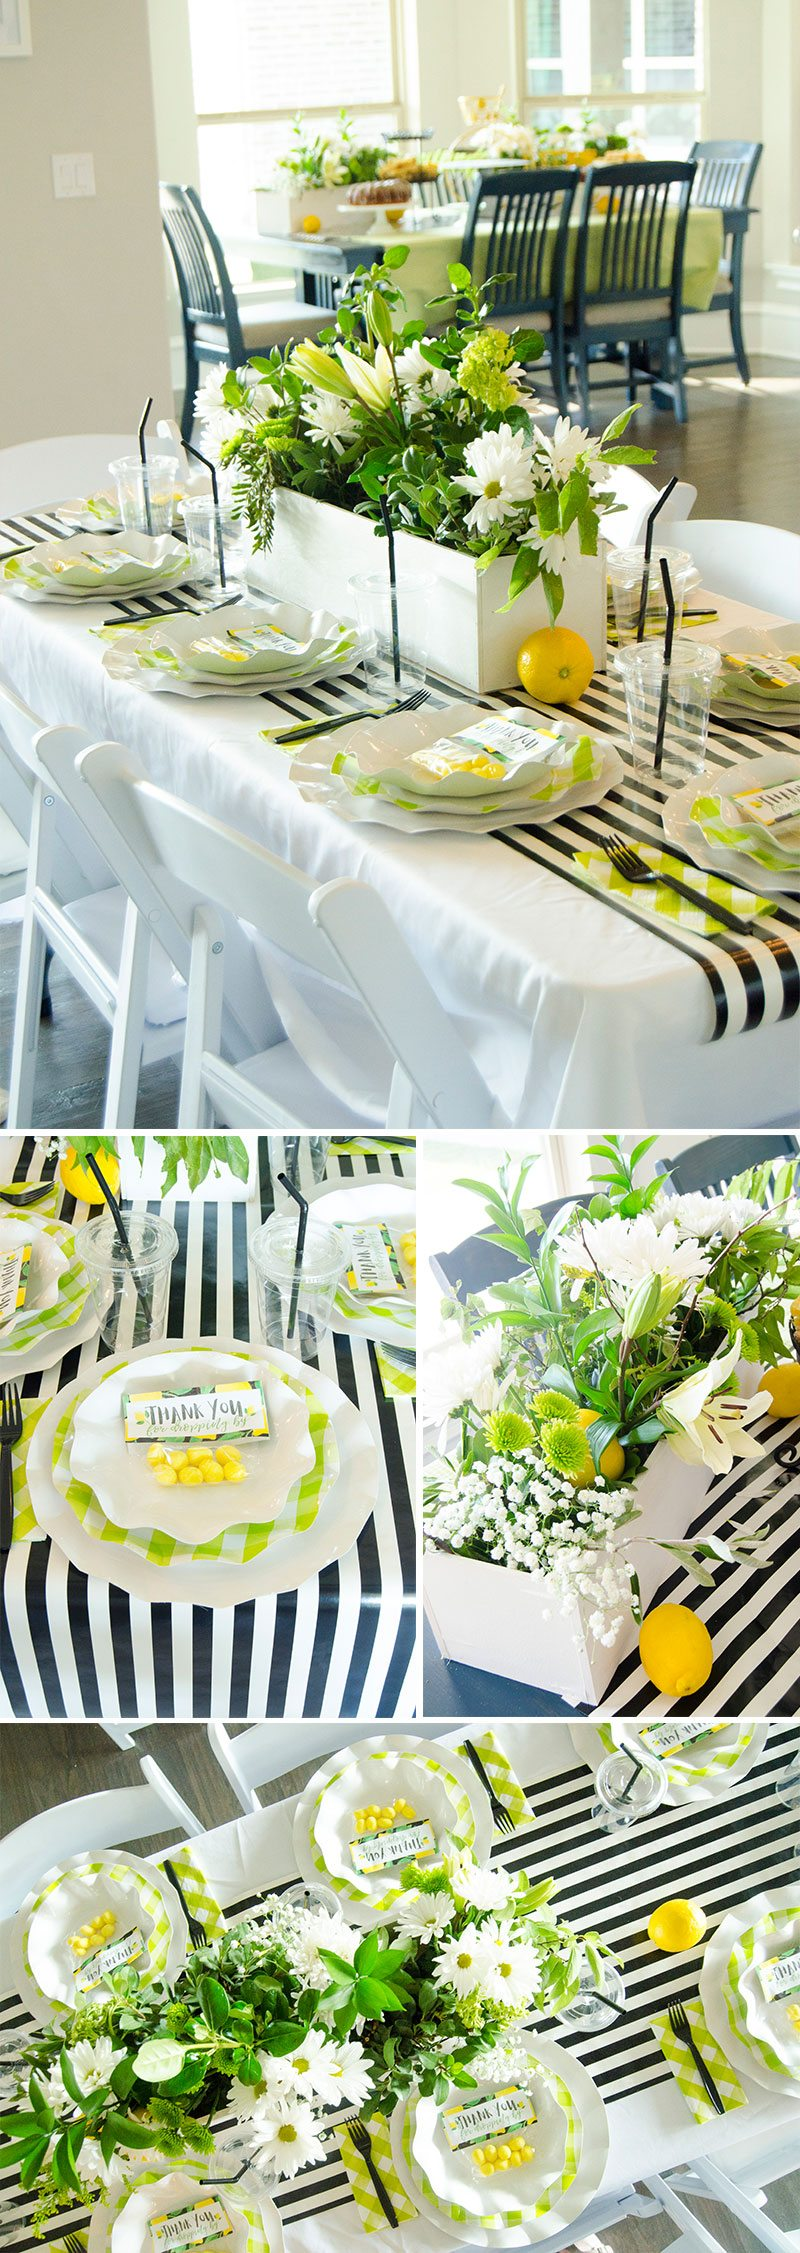 How To Host A Salad Social by Lindi Haws of Love The Day